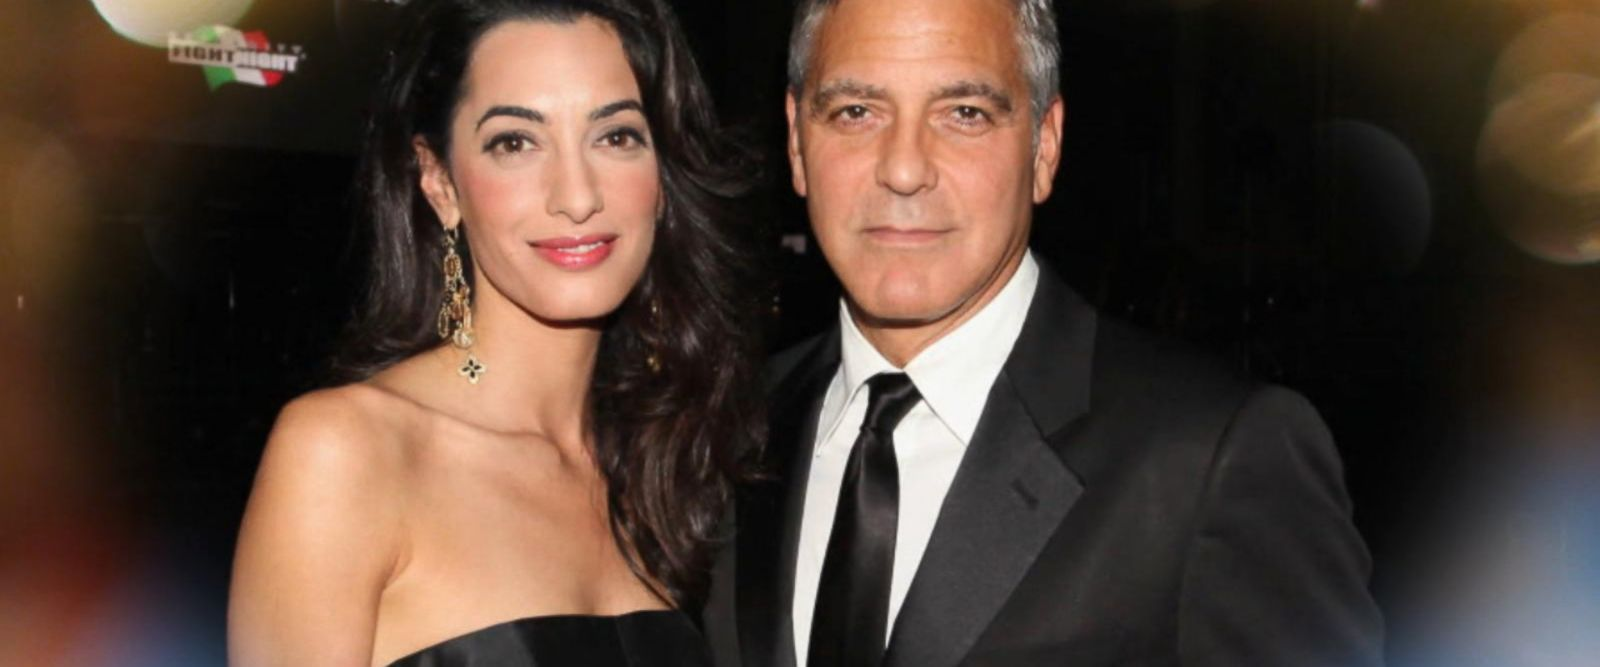 VIDEO: George Clooney speaks out about becoming a father